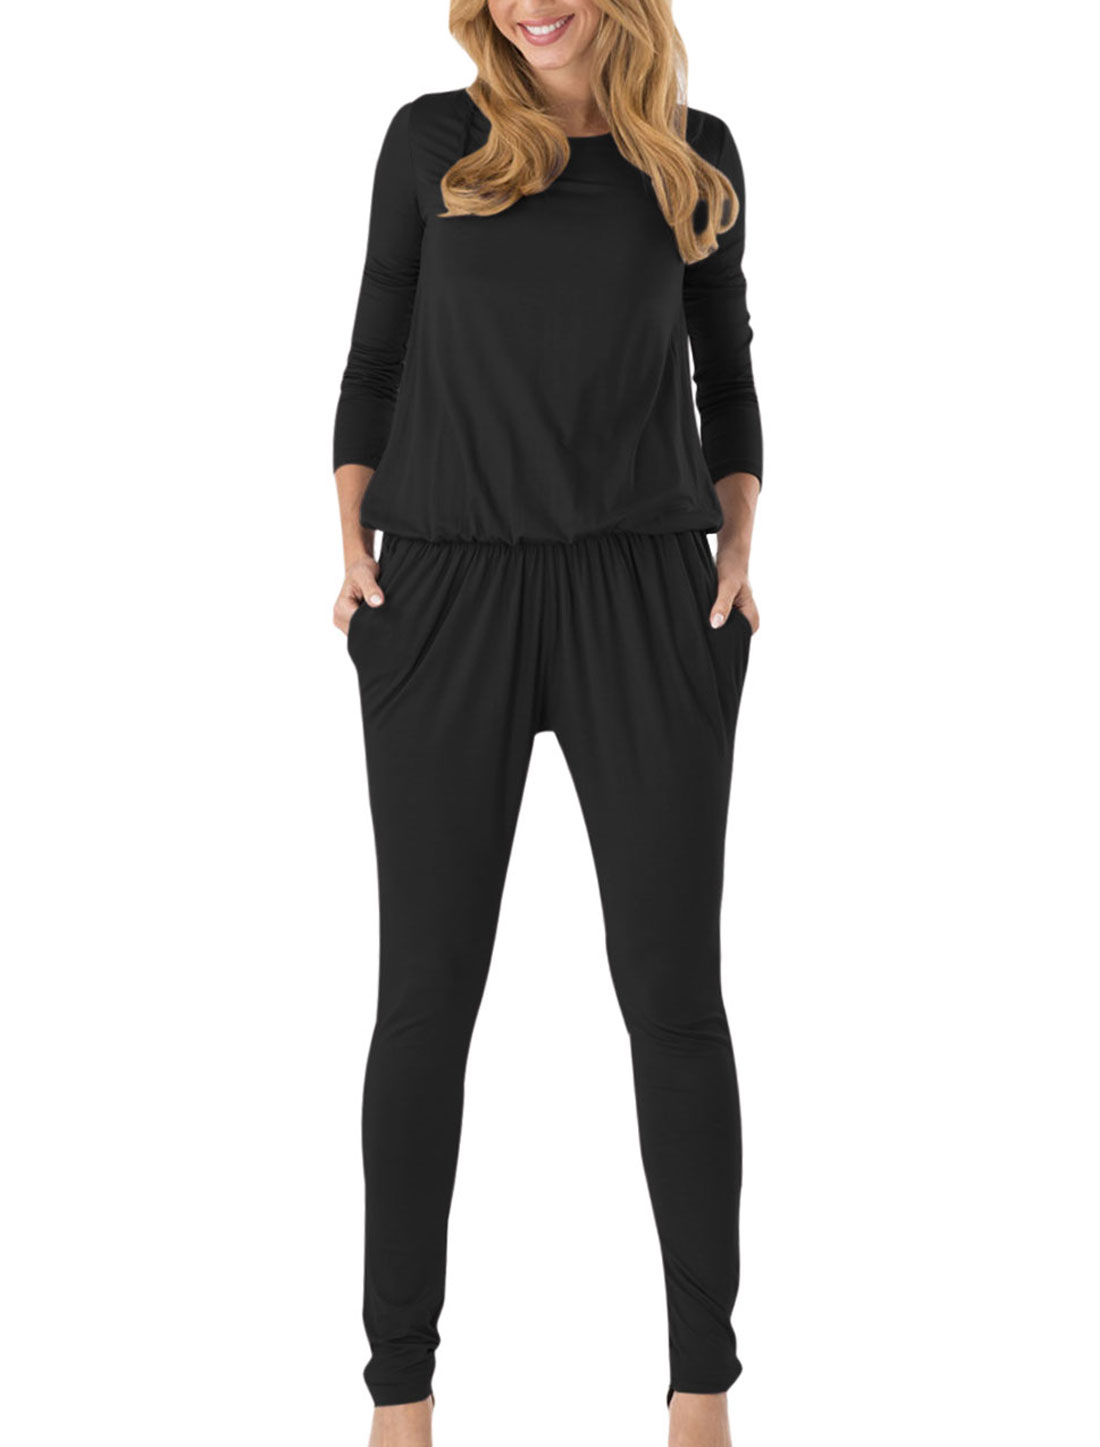 Round Neck Elastic Waist Casual Jumpsuit for Women Black M